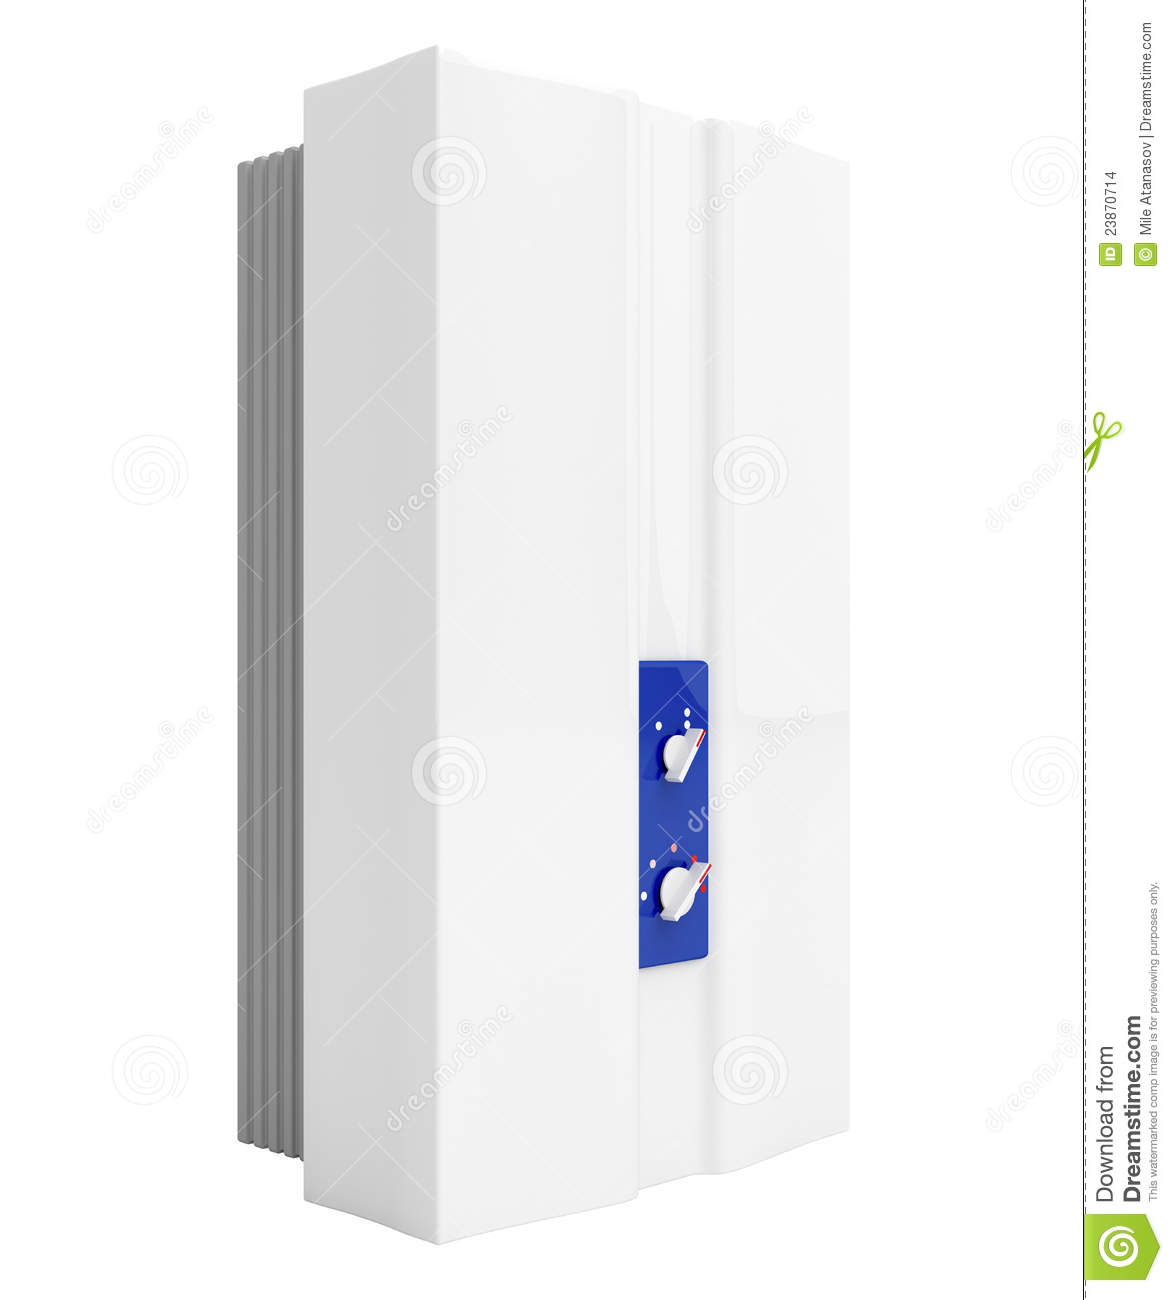 Tankless Water Heater Stock Images   Image  23870714